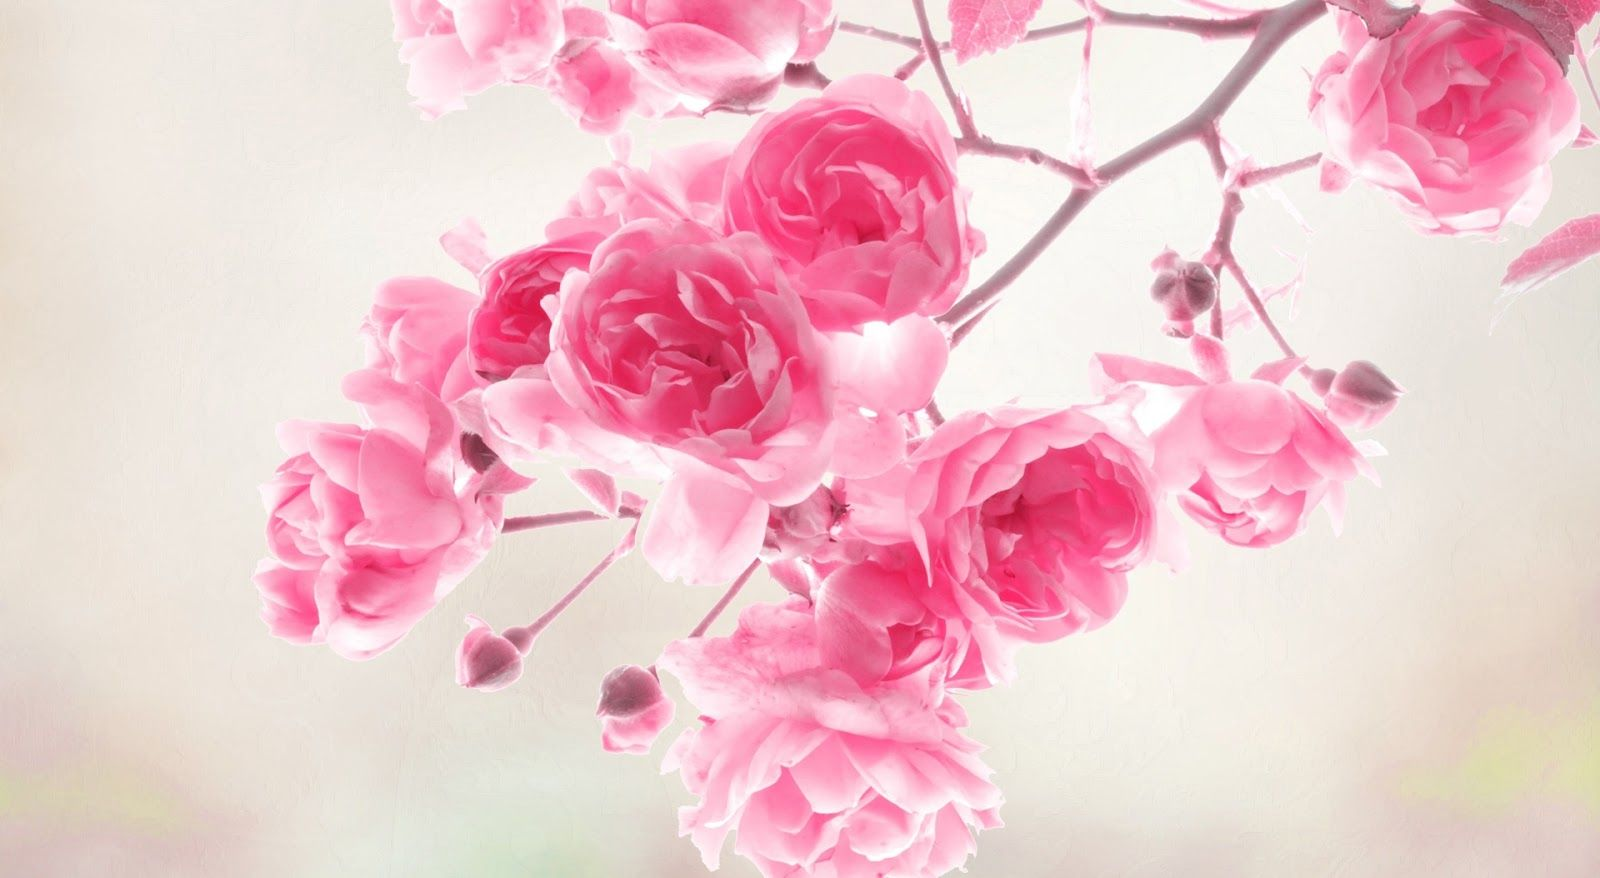 Pink flowers background 19325 1600x878 px hdwallsource pink pink flowers background 19325 1600x878 px hdwallsource dhlflorist Choice Image